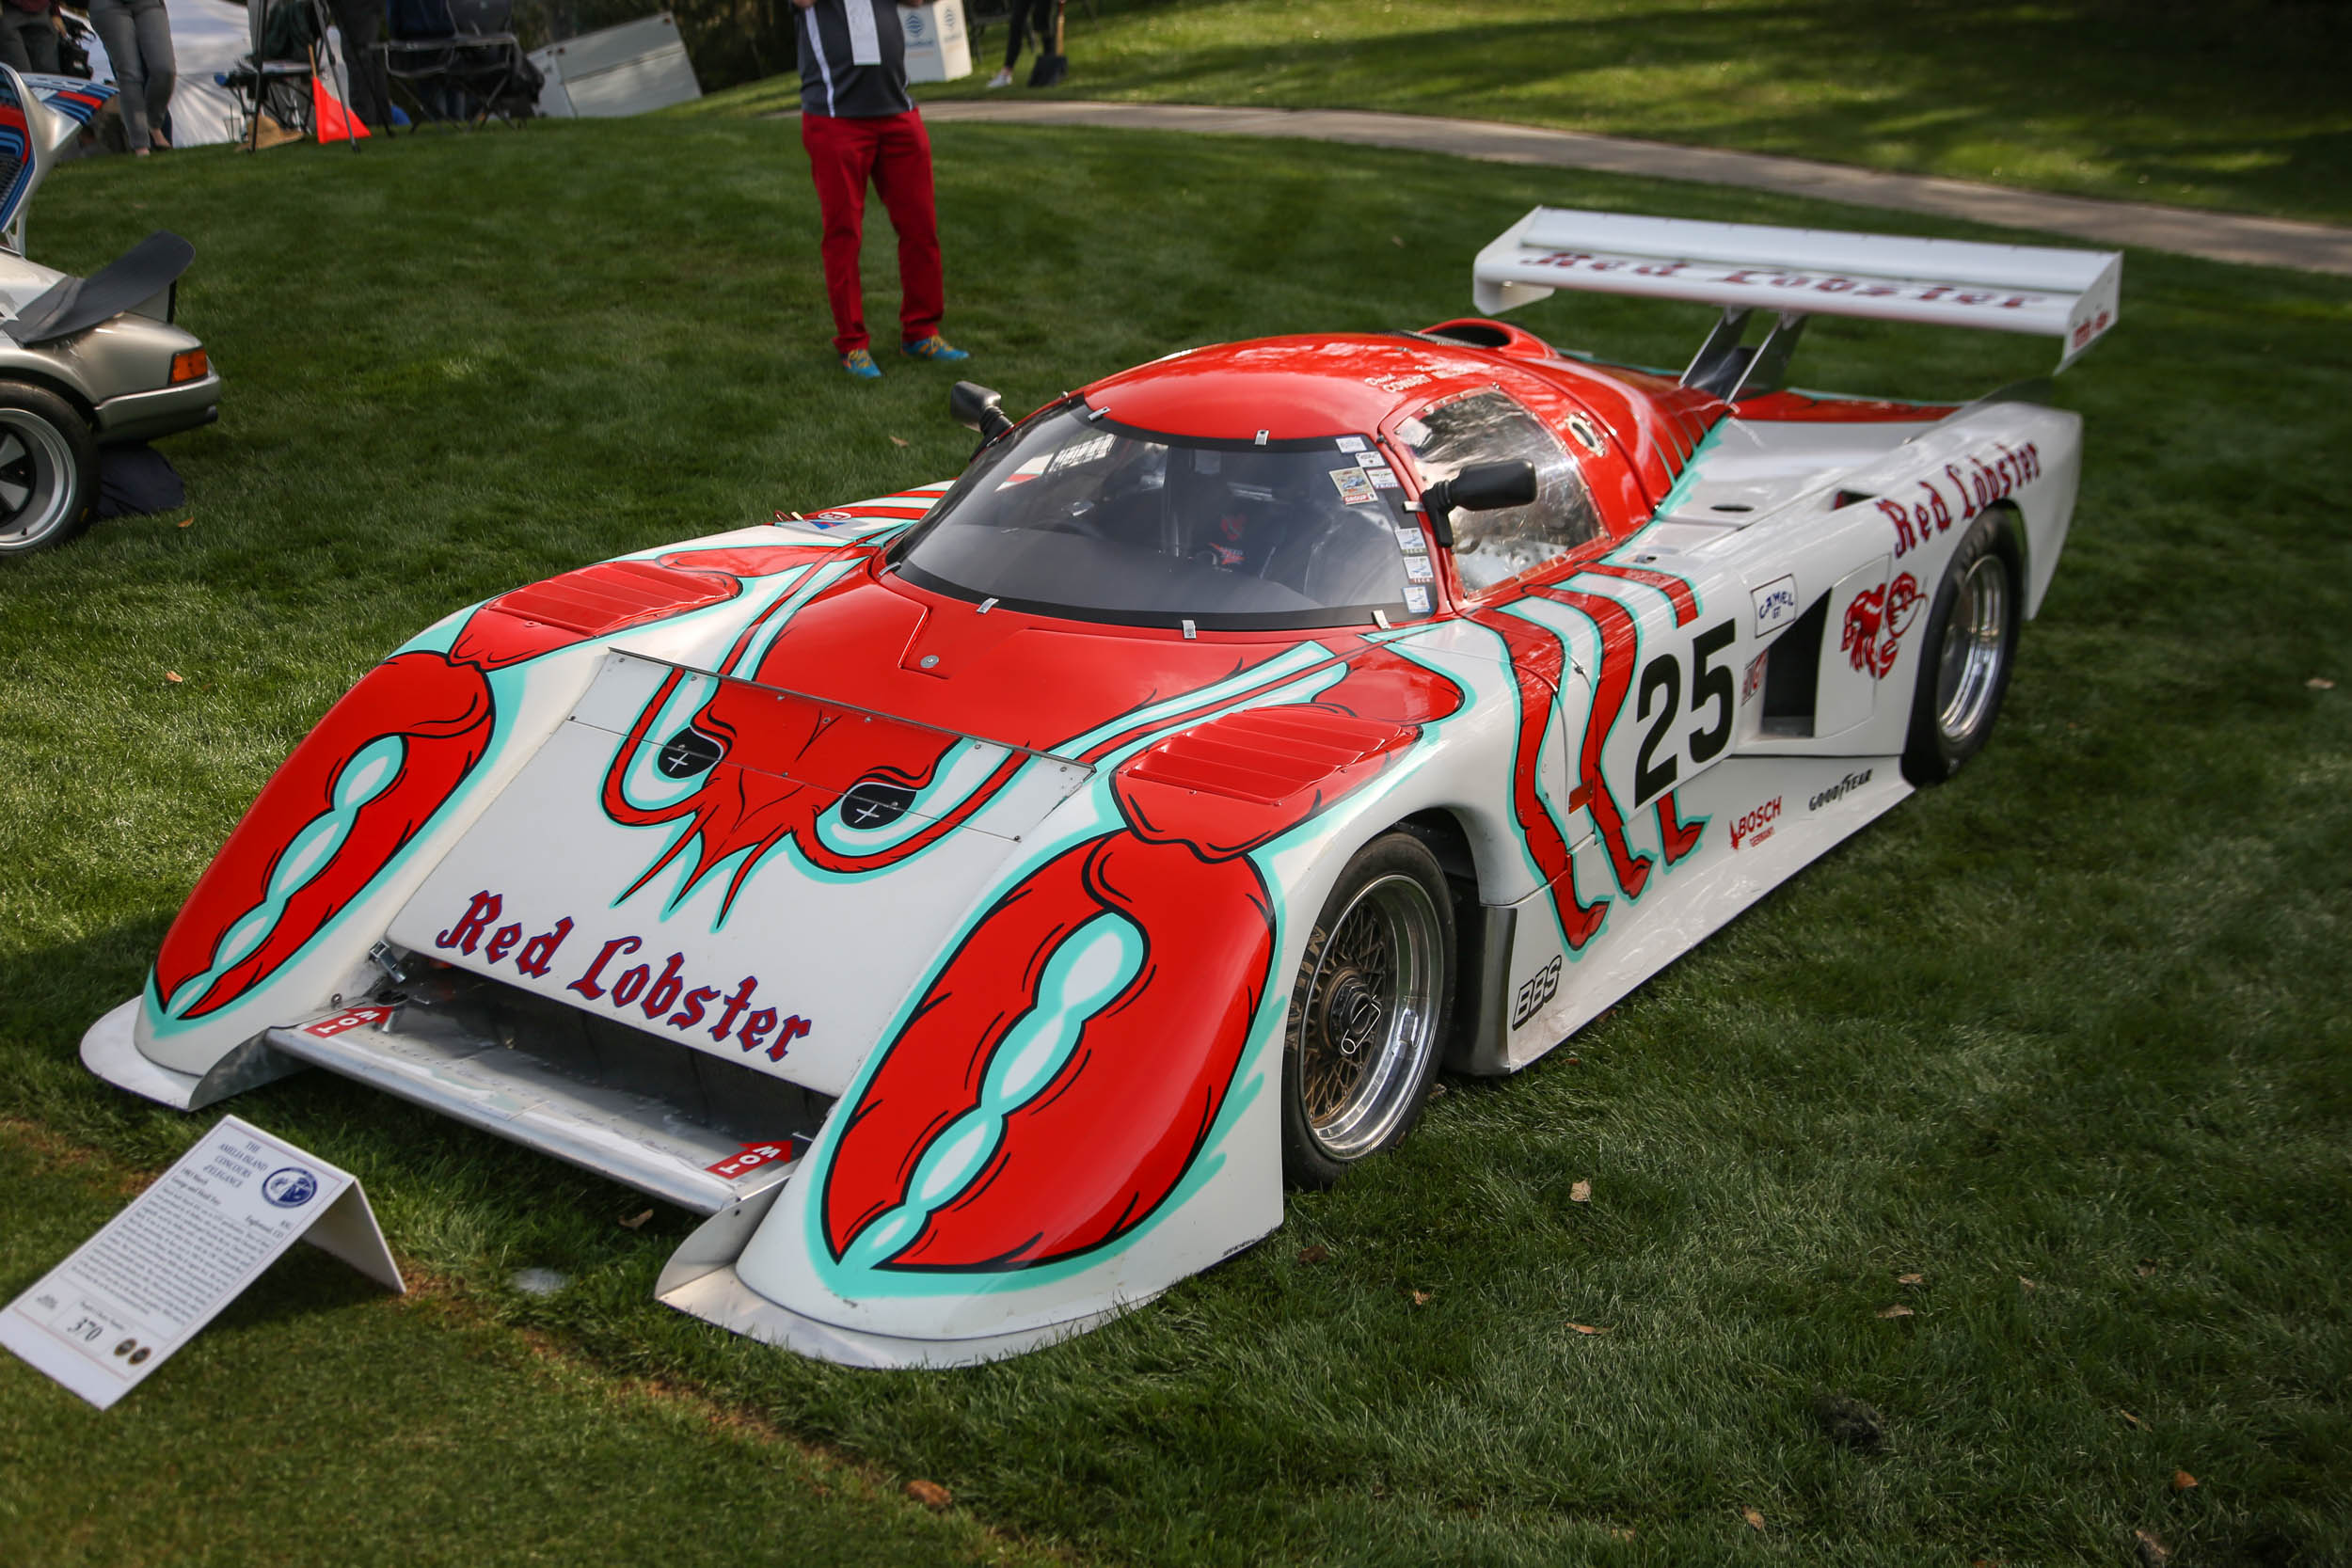 Has there ever been a cooler race livery than this Red Lobster March Chevrolet IMSA car?